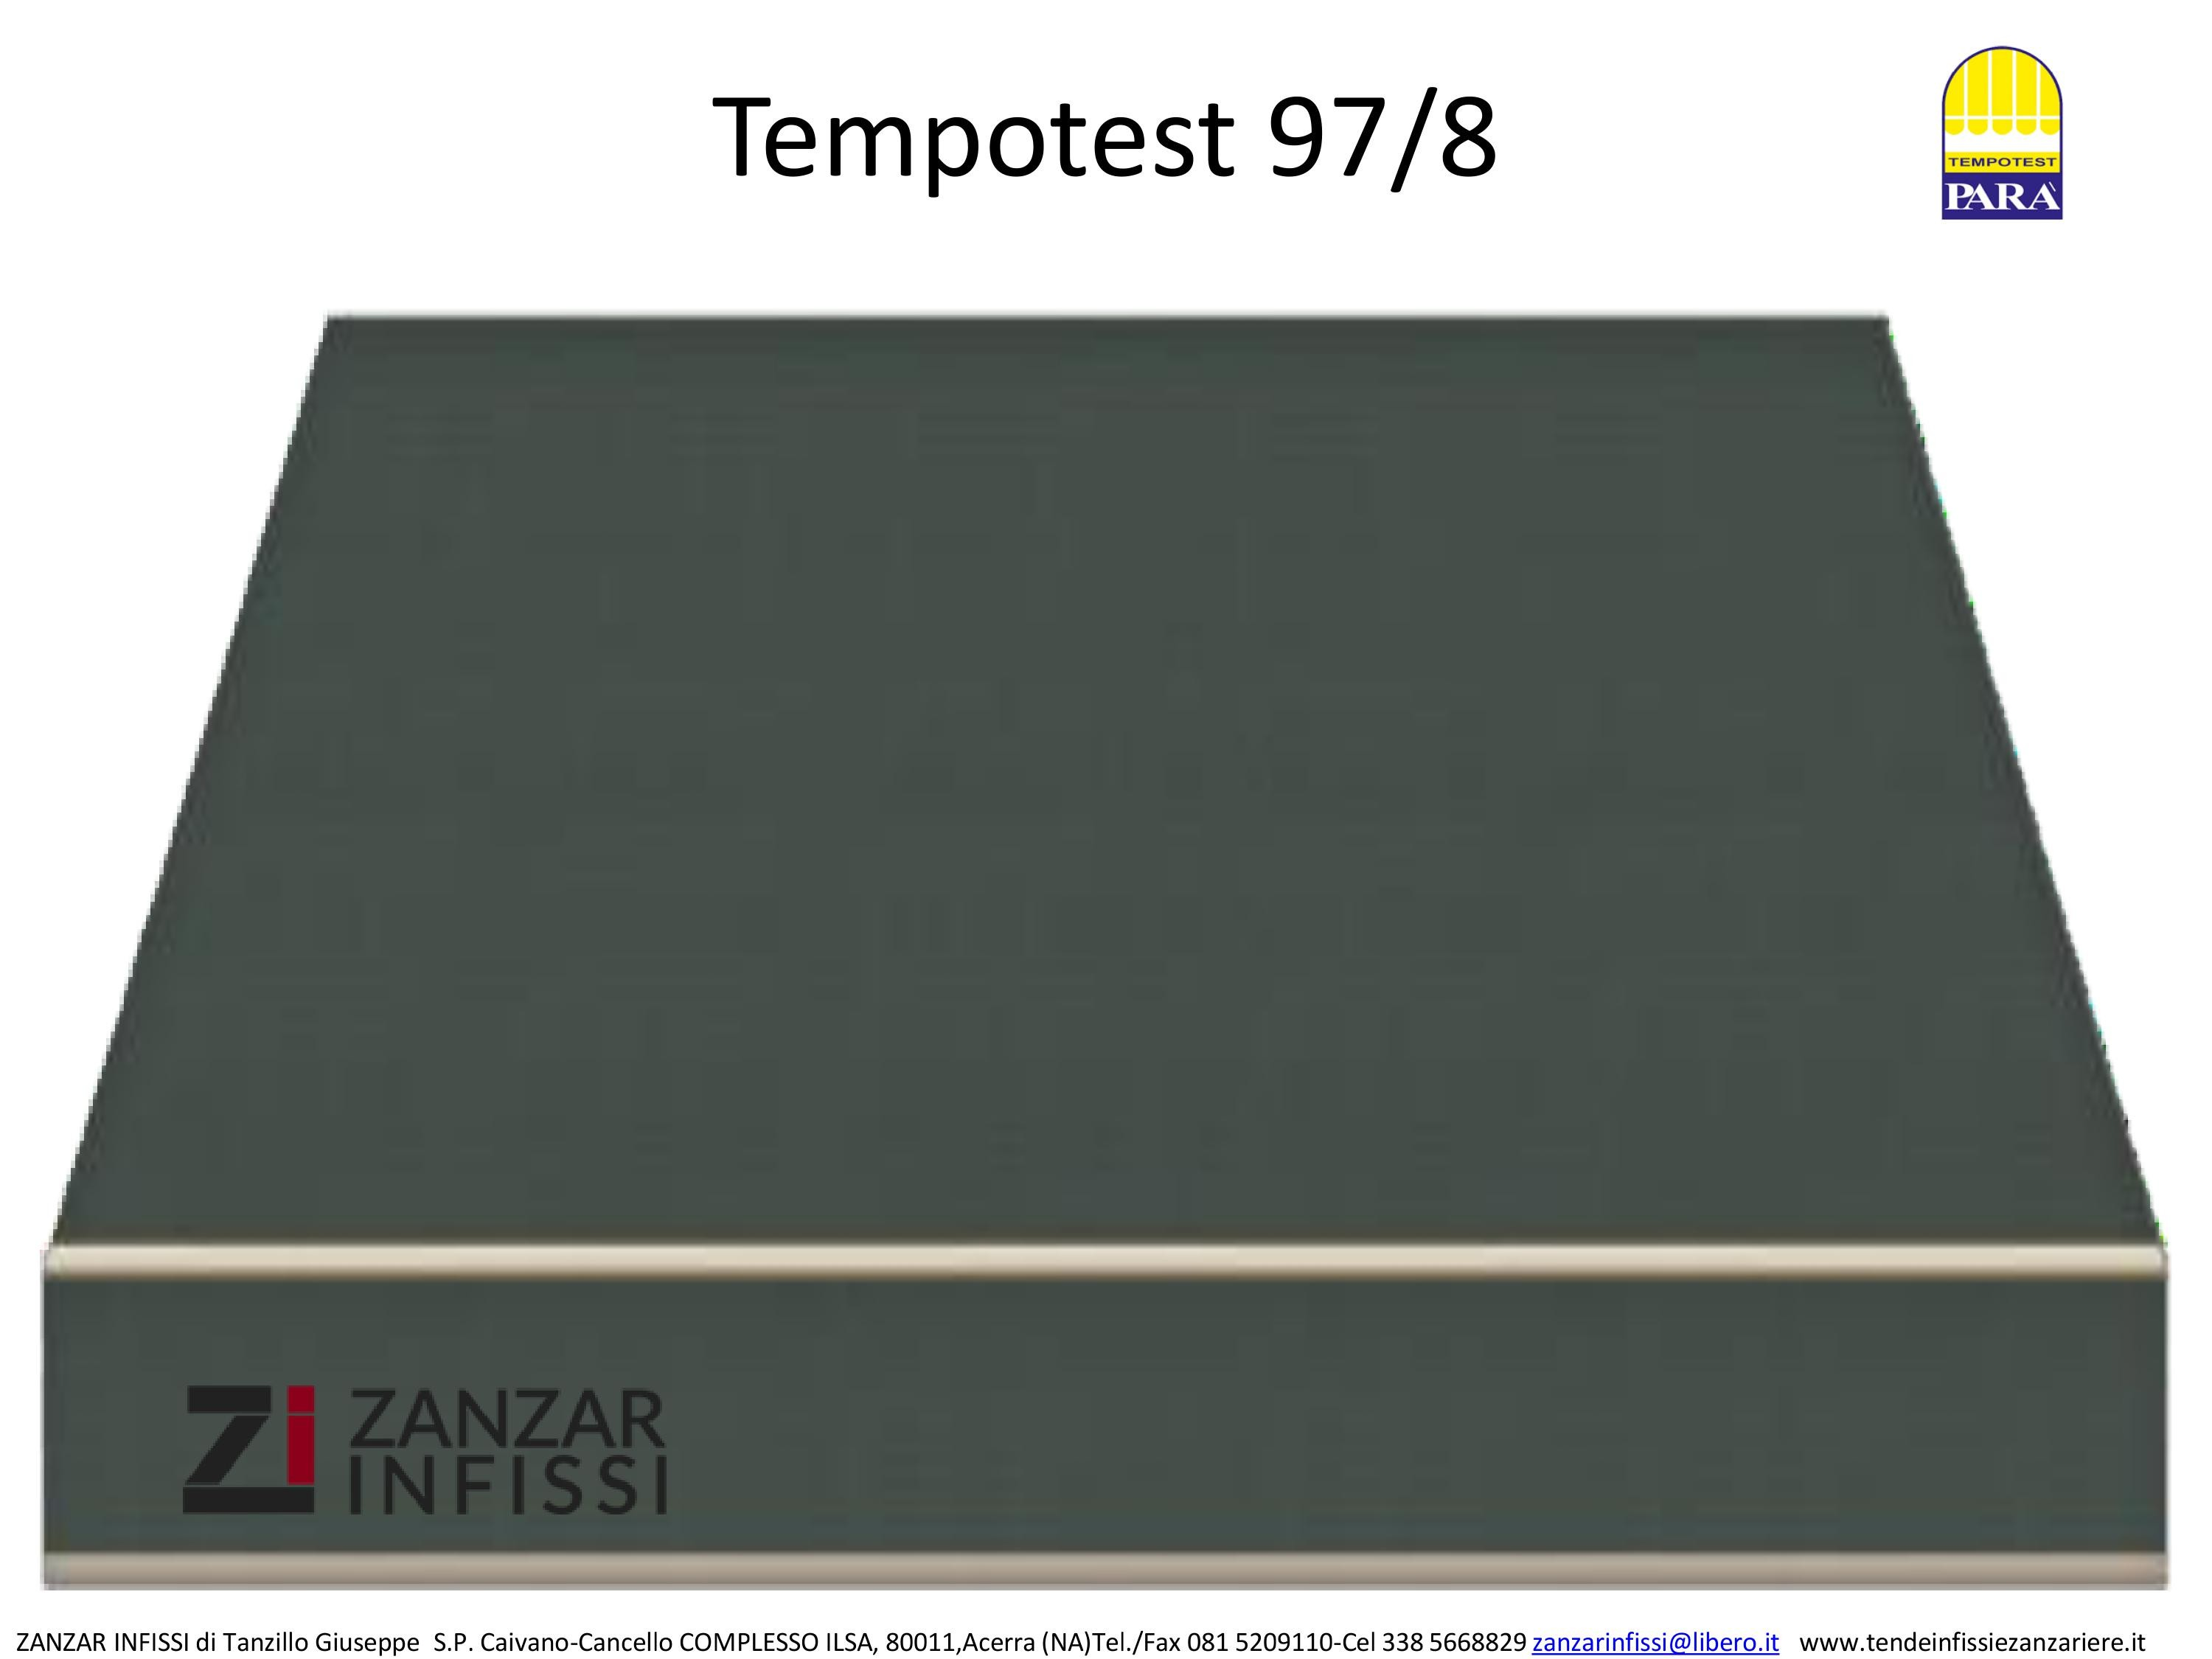 Tempotest 97/8